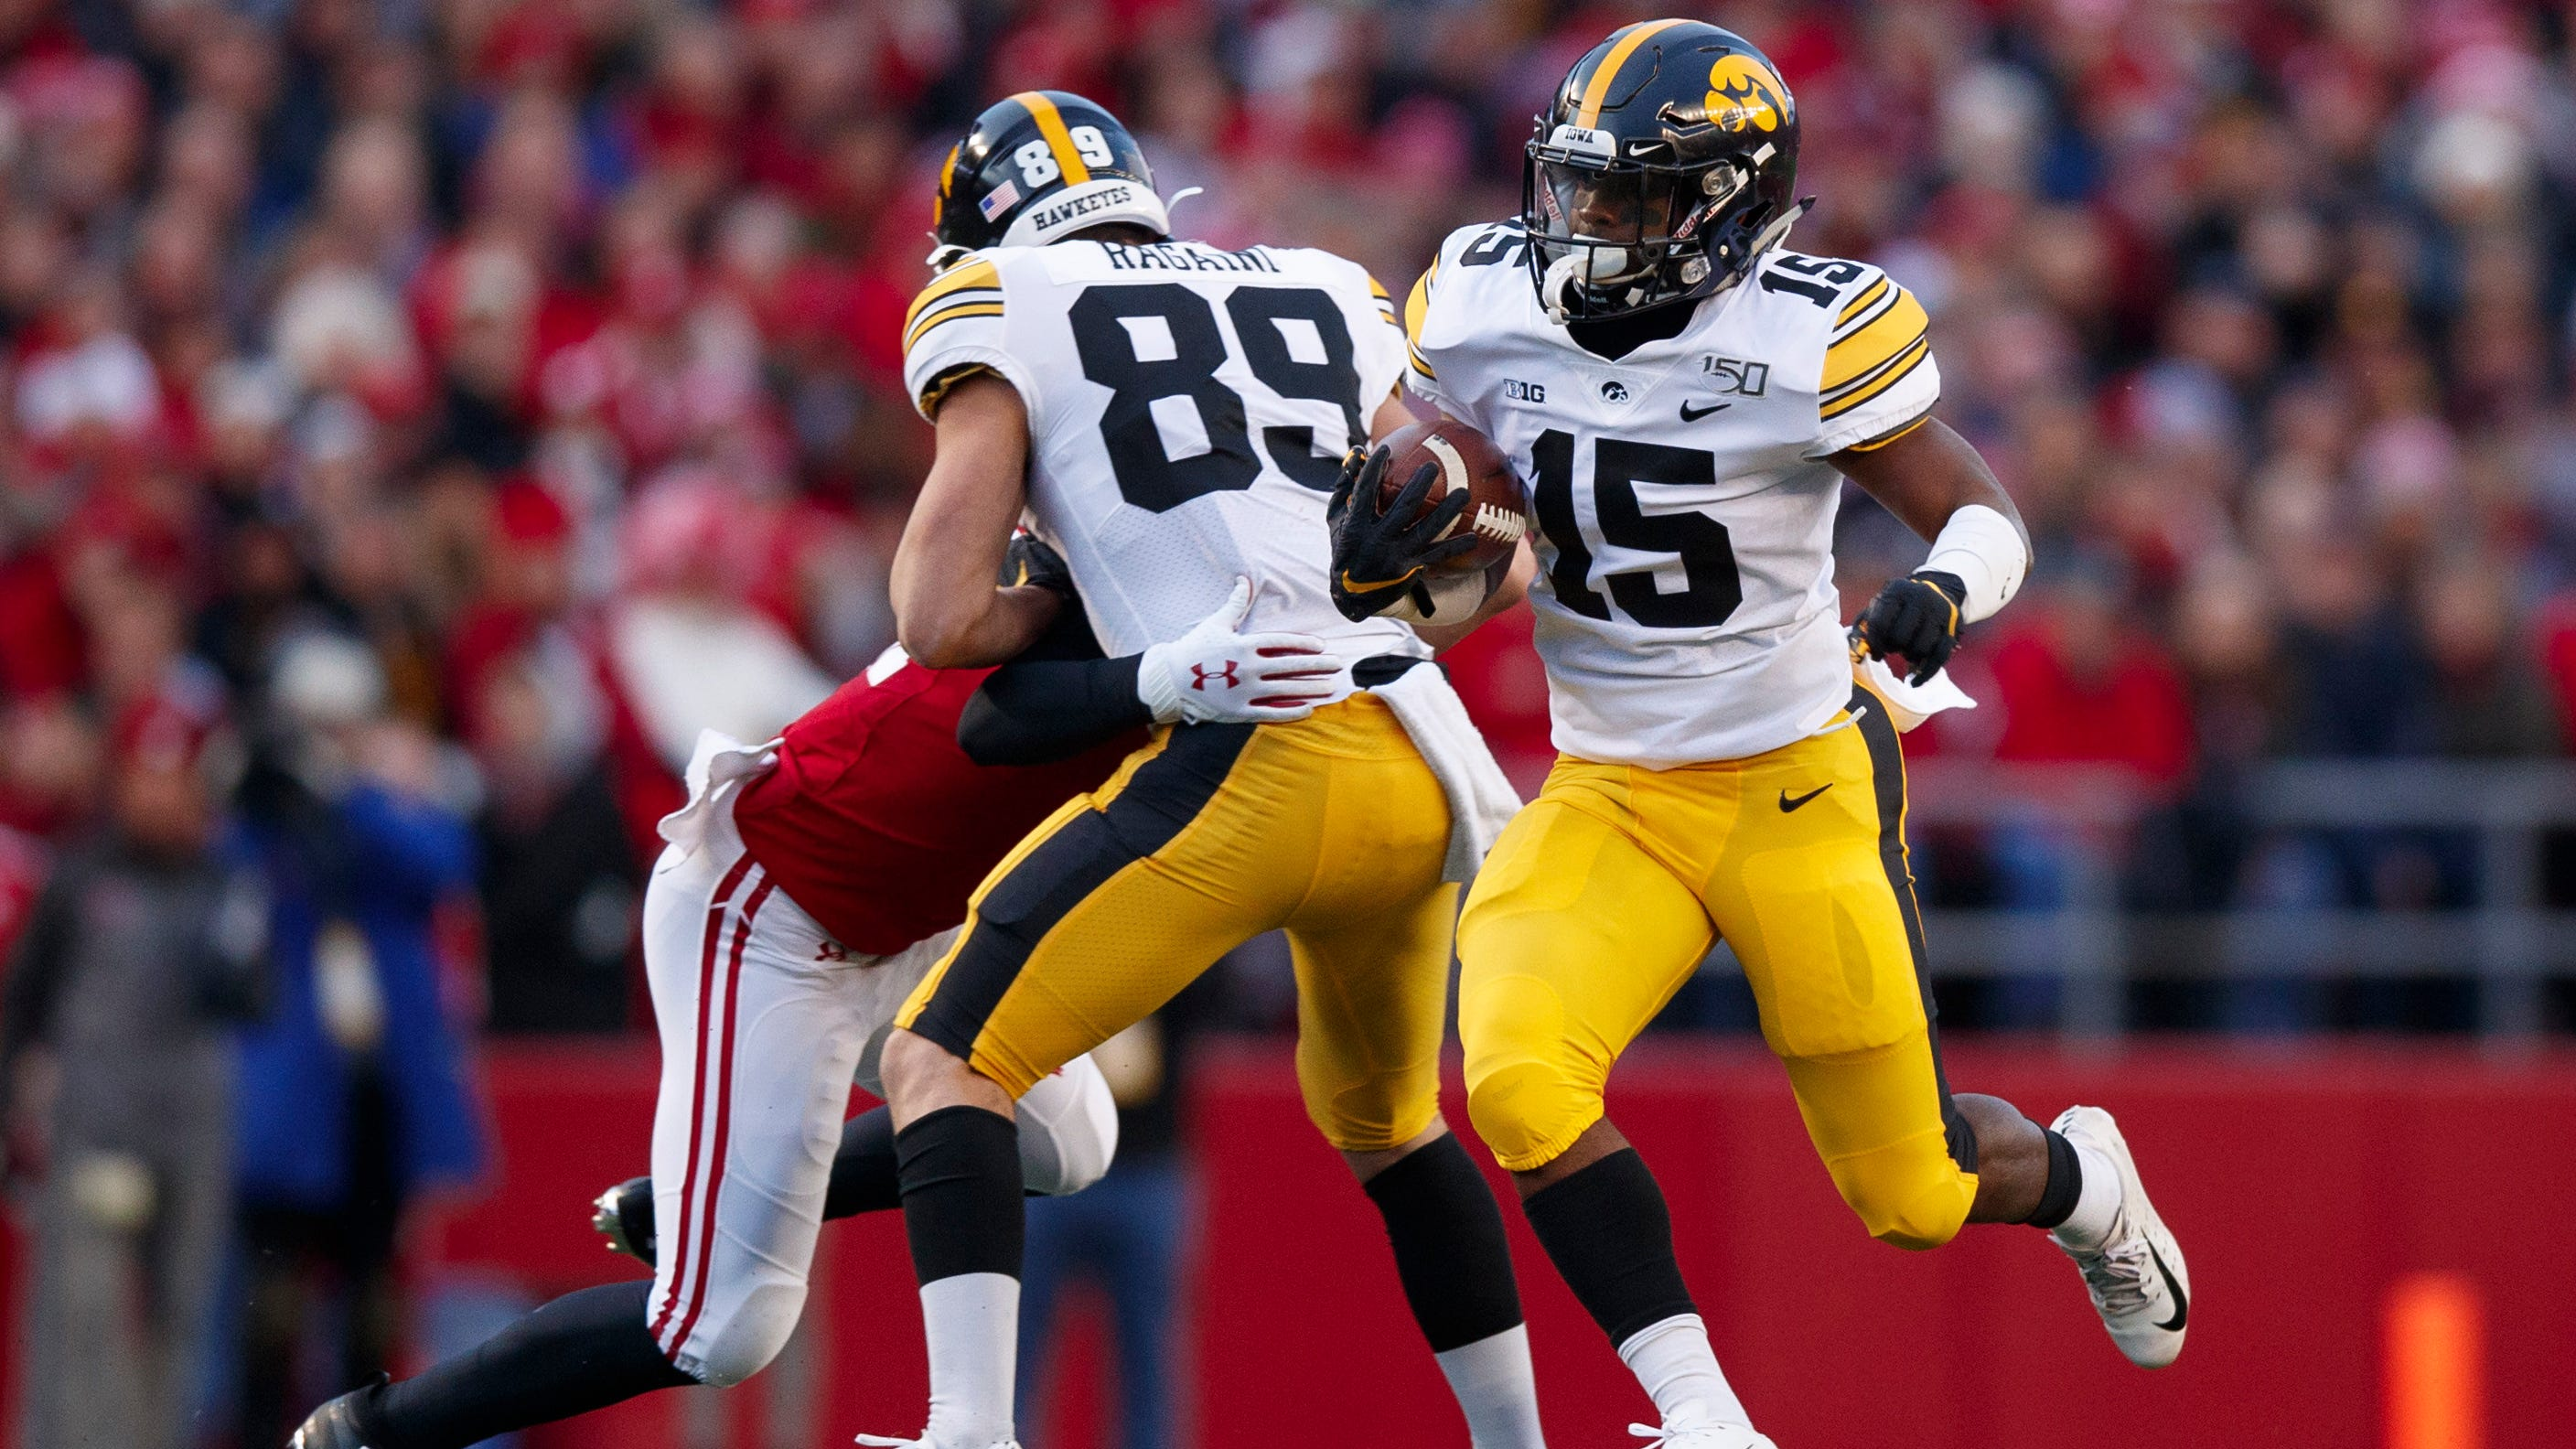 Iowa athletic director: It would take 'miracle' to start Big Ten football in October